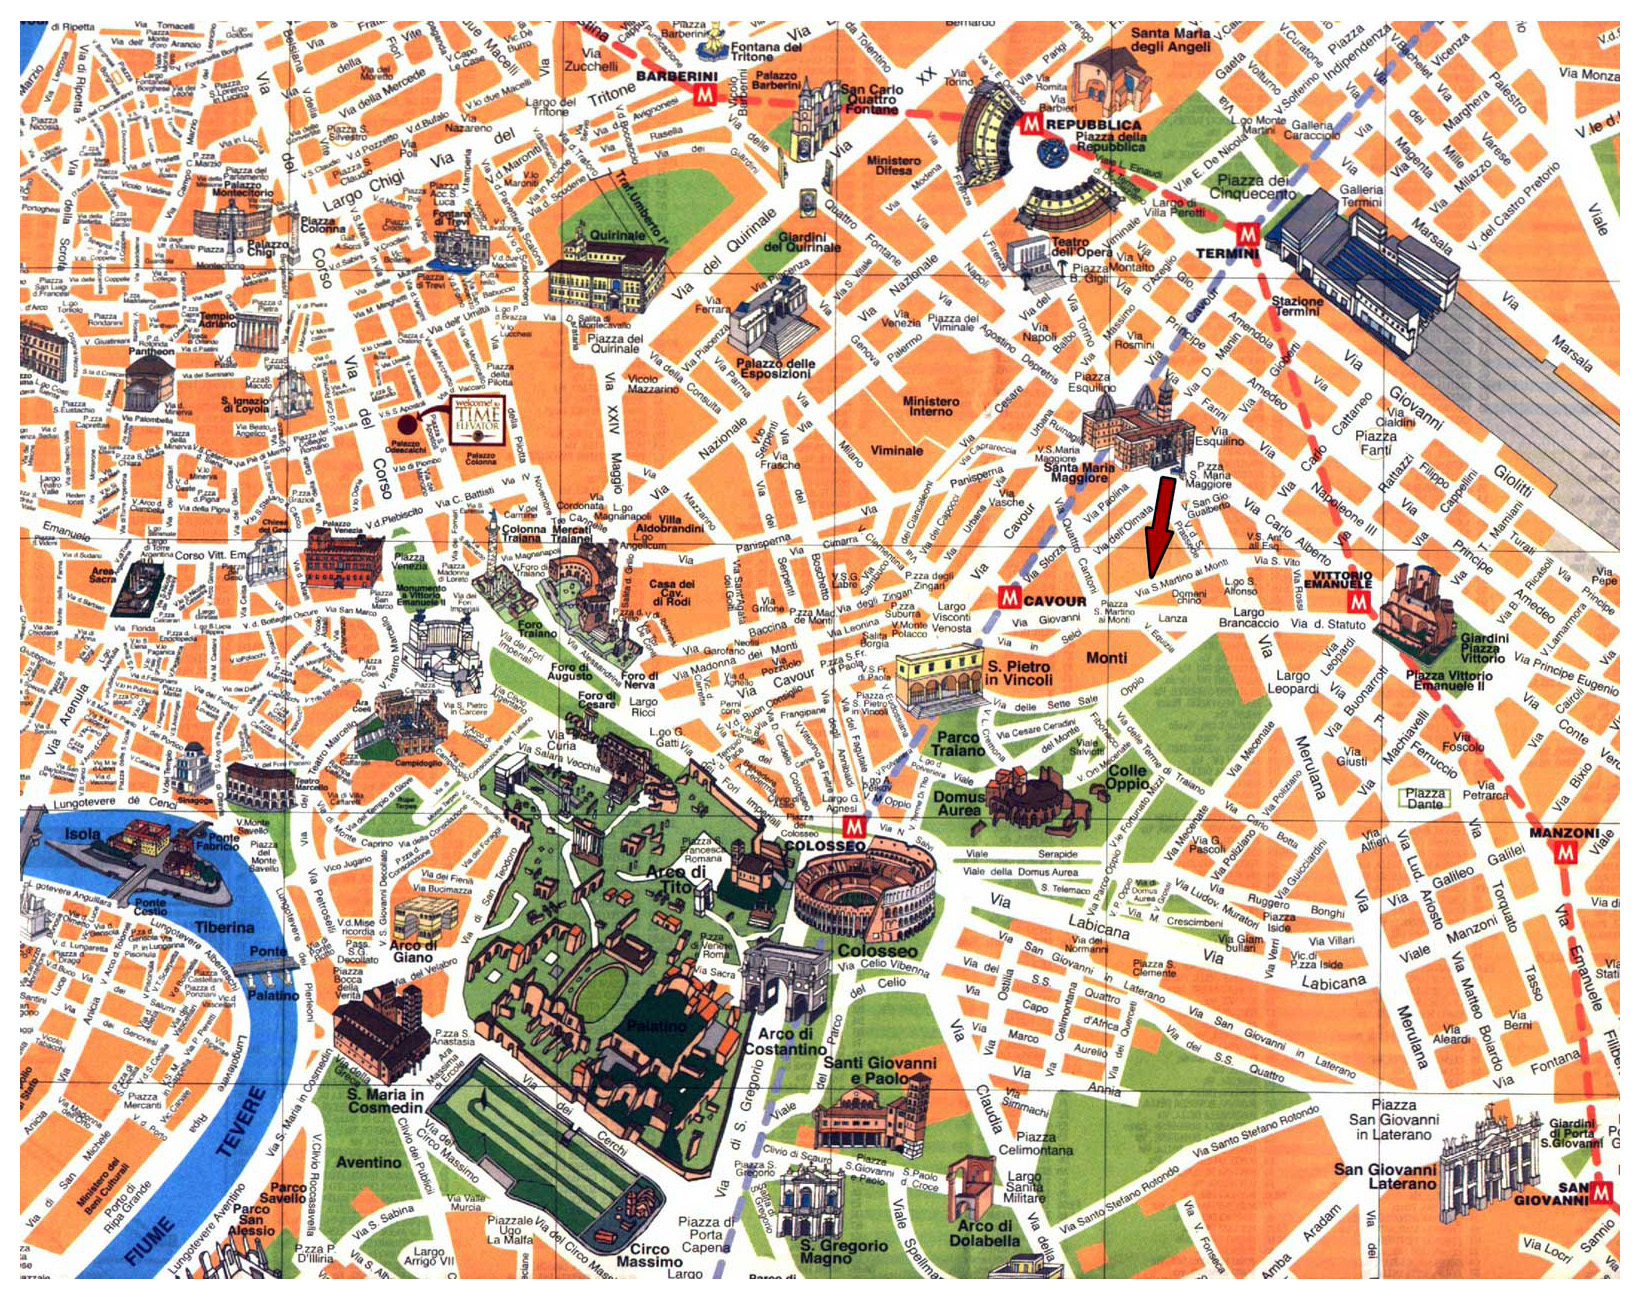 Map Of Italy For Tourists.Detailed Tourist Map Of Rome City Center Rome Italy Europe